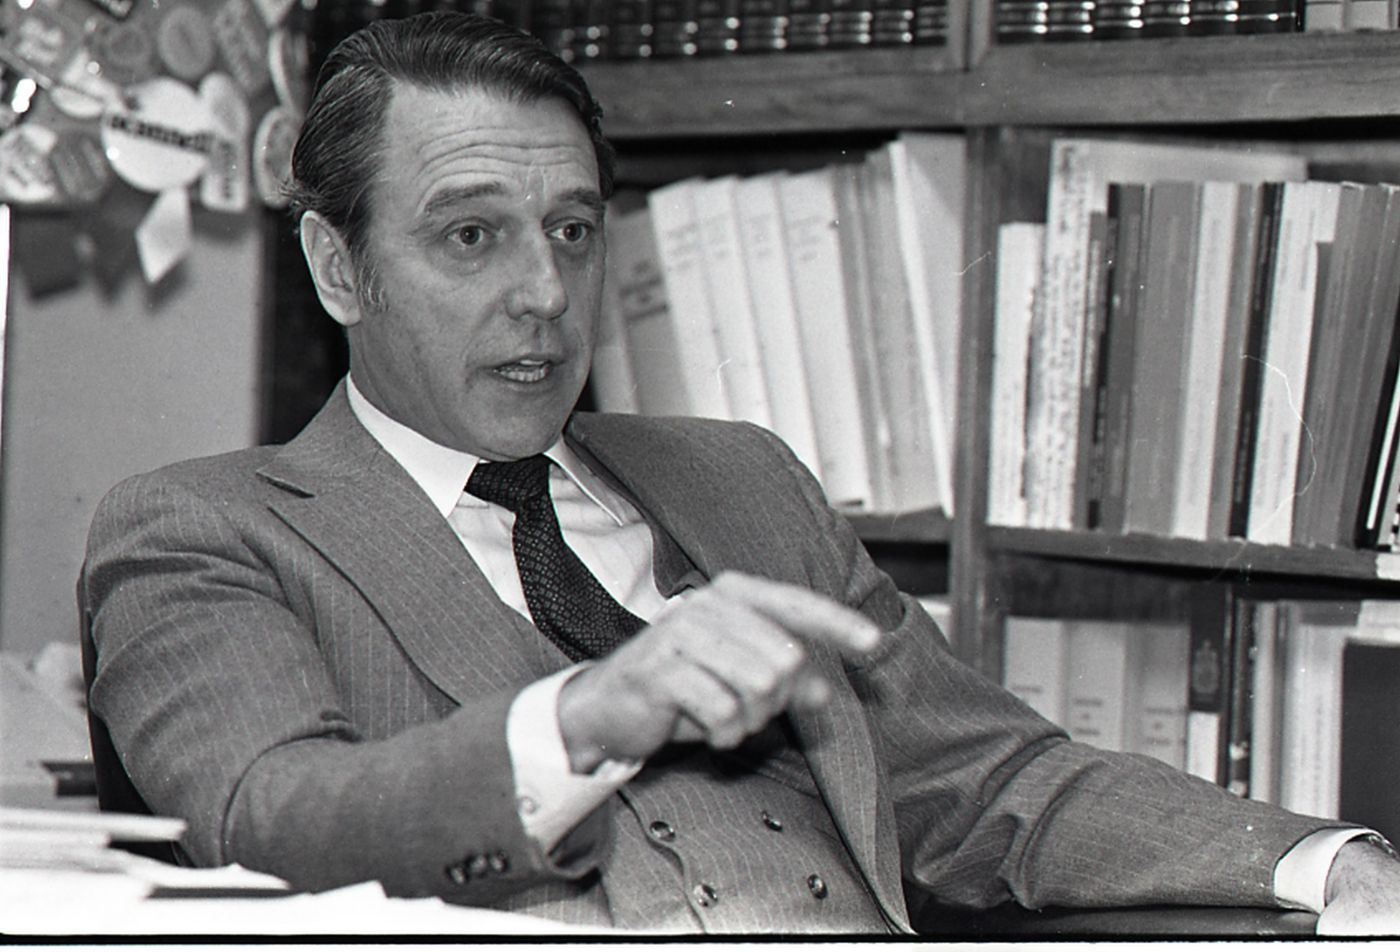 Black and white photograph, three-quarter view, of a dark-haired, middle-aged man wearing a grey pin-striped suit, white shirt and dark tie. He is speaking, pointing with his index finger. Behind him, a bookshelf and part of a bulletin board.